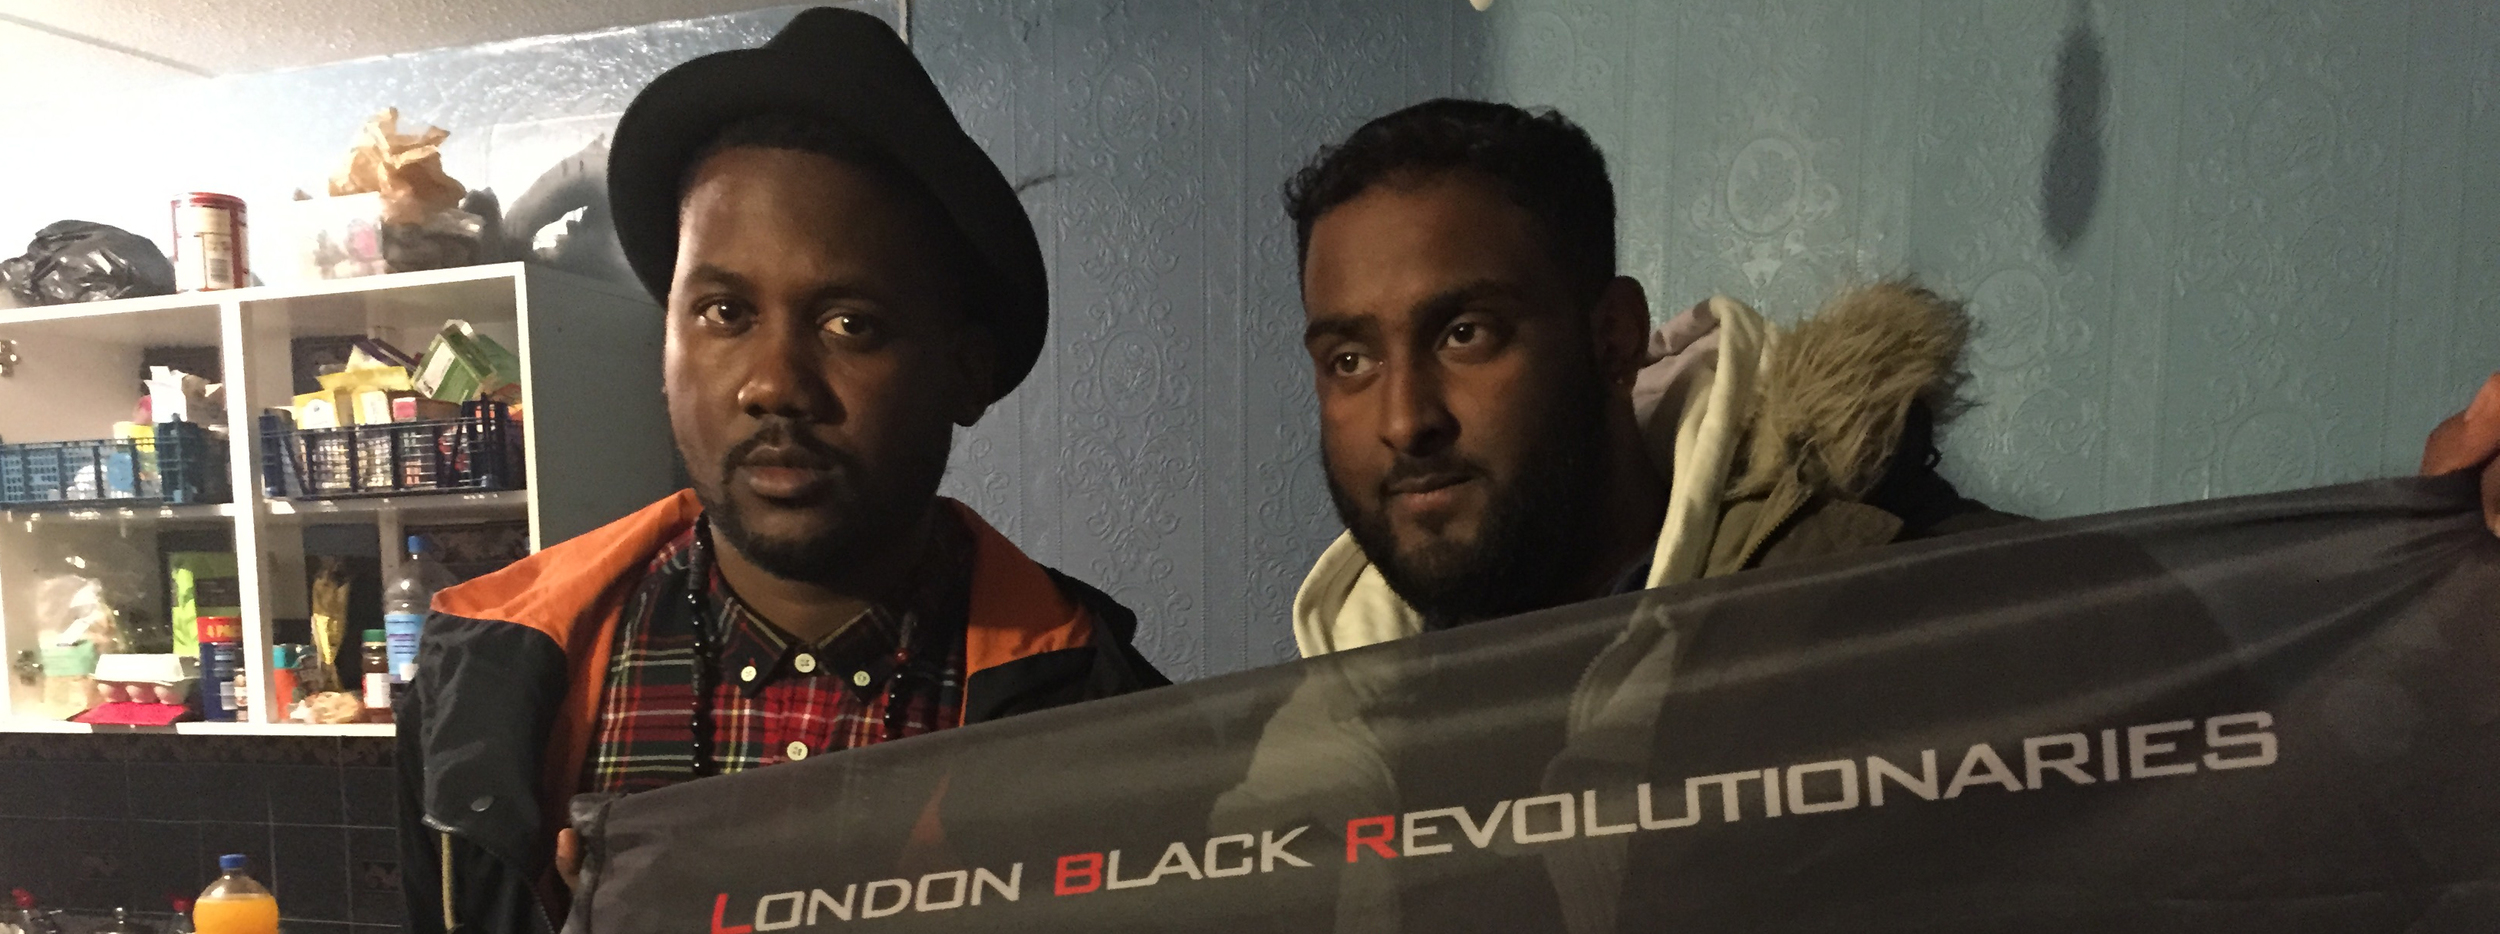 Tef was able to link up with the London Black Revolutionaries who are about that life for real.  They are currently occupying an 100 unit apartment building in London, and took Tef on an exclusive tour.